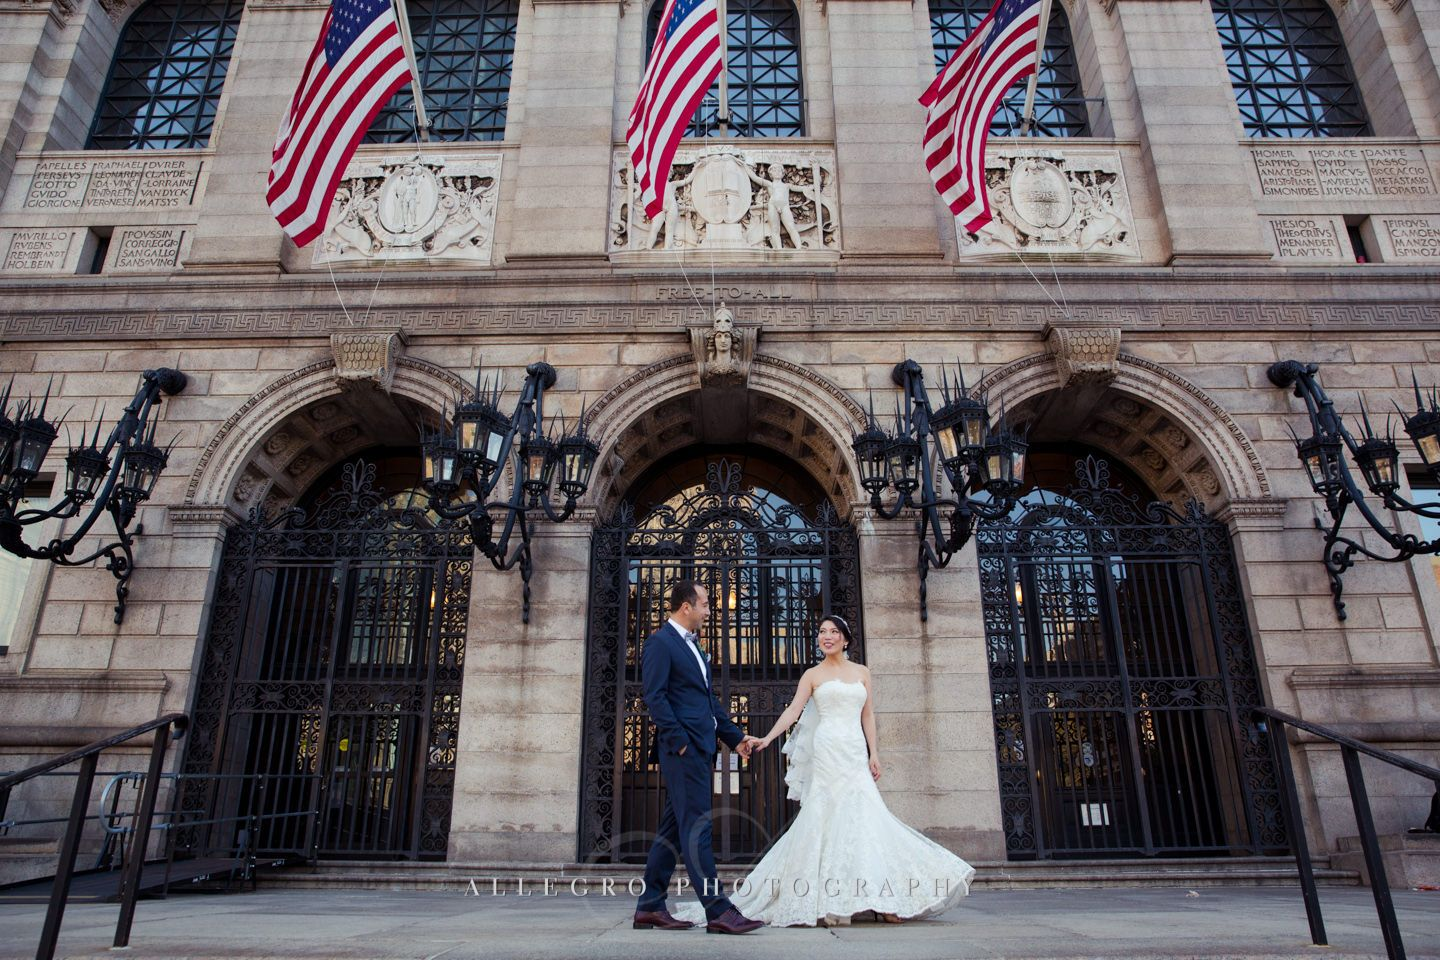 Couple Portraits at the Boston Public Library - photo by Allegro Photography